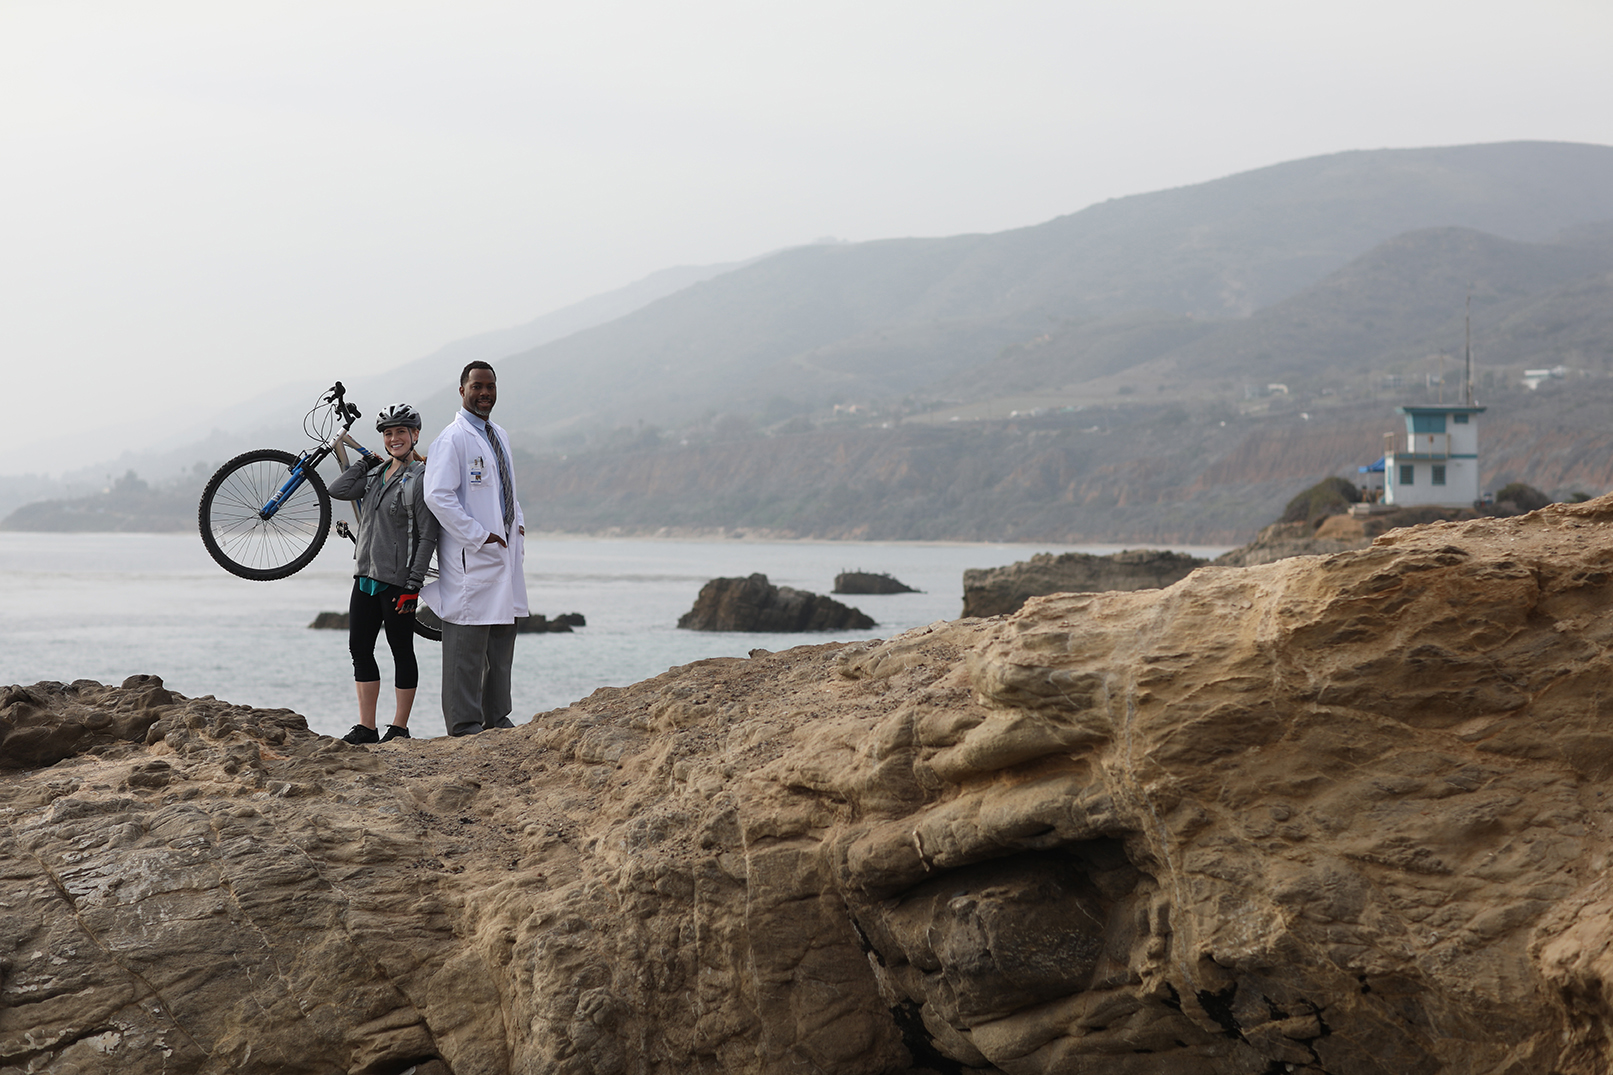 male doctor in white lab coat standing on rocky cliffside next to female mountain biker